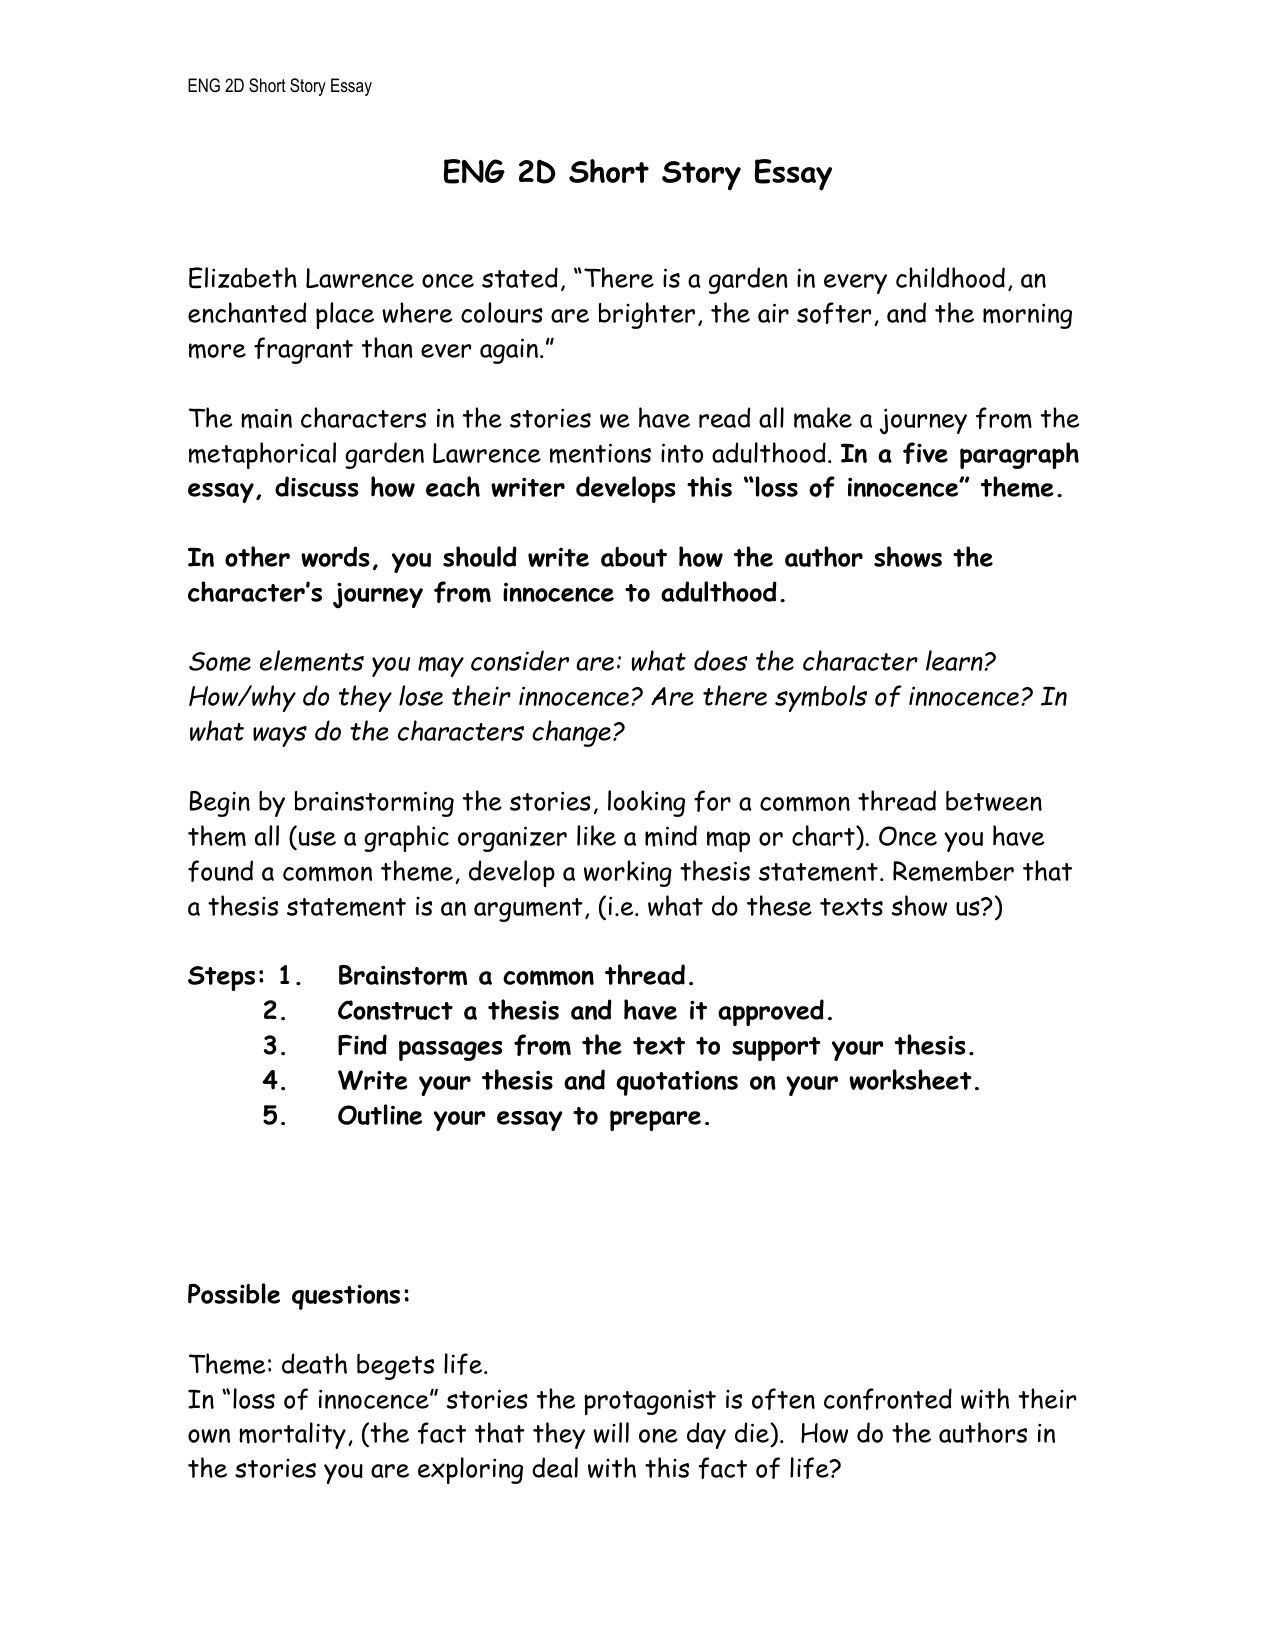 Worksheets Short Story Questions extended essay guide 2010 lady of shalott help case study stories essays english class minor characters some write an questions online term paper a poem and other short stories